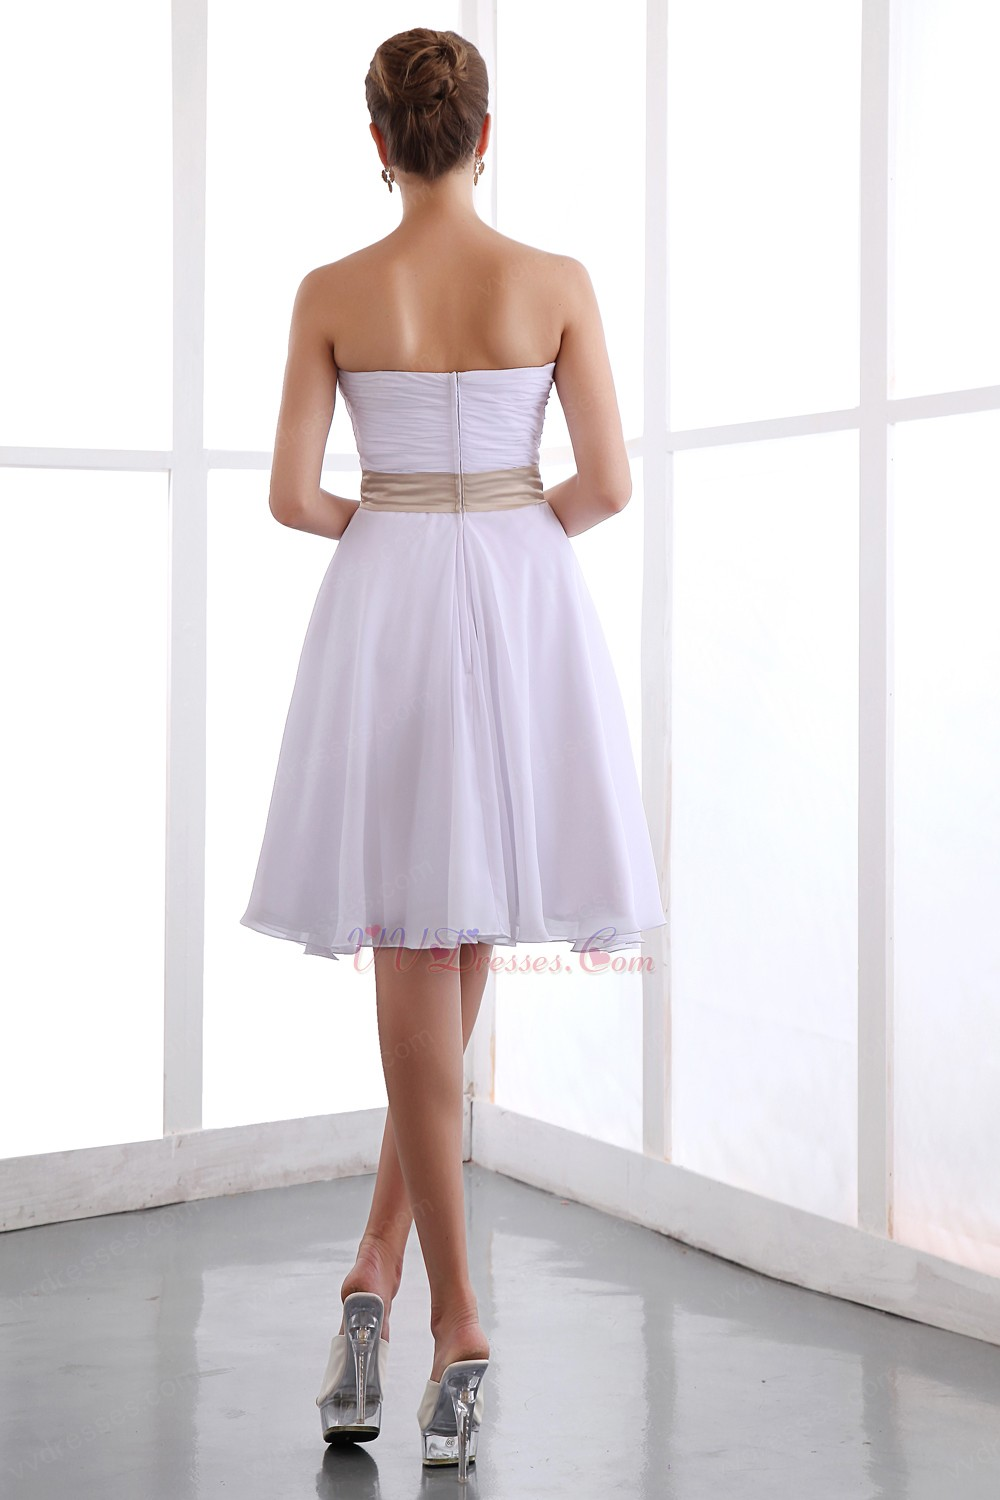 Bridesmaids dresses under 100 dollars wedding dresses asian for Wedding dress 100 dollars